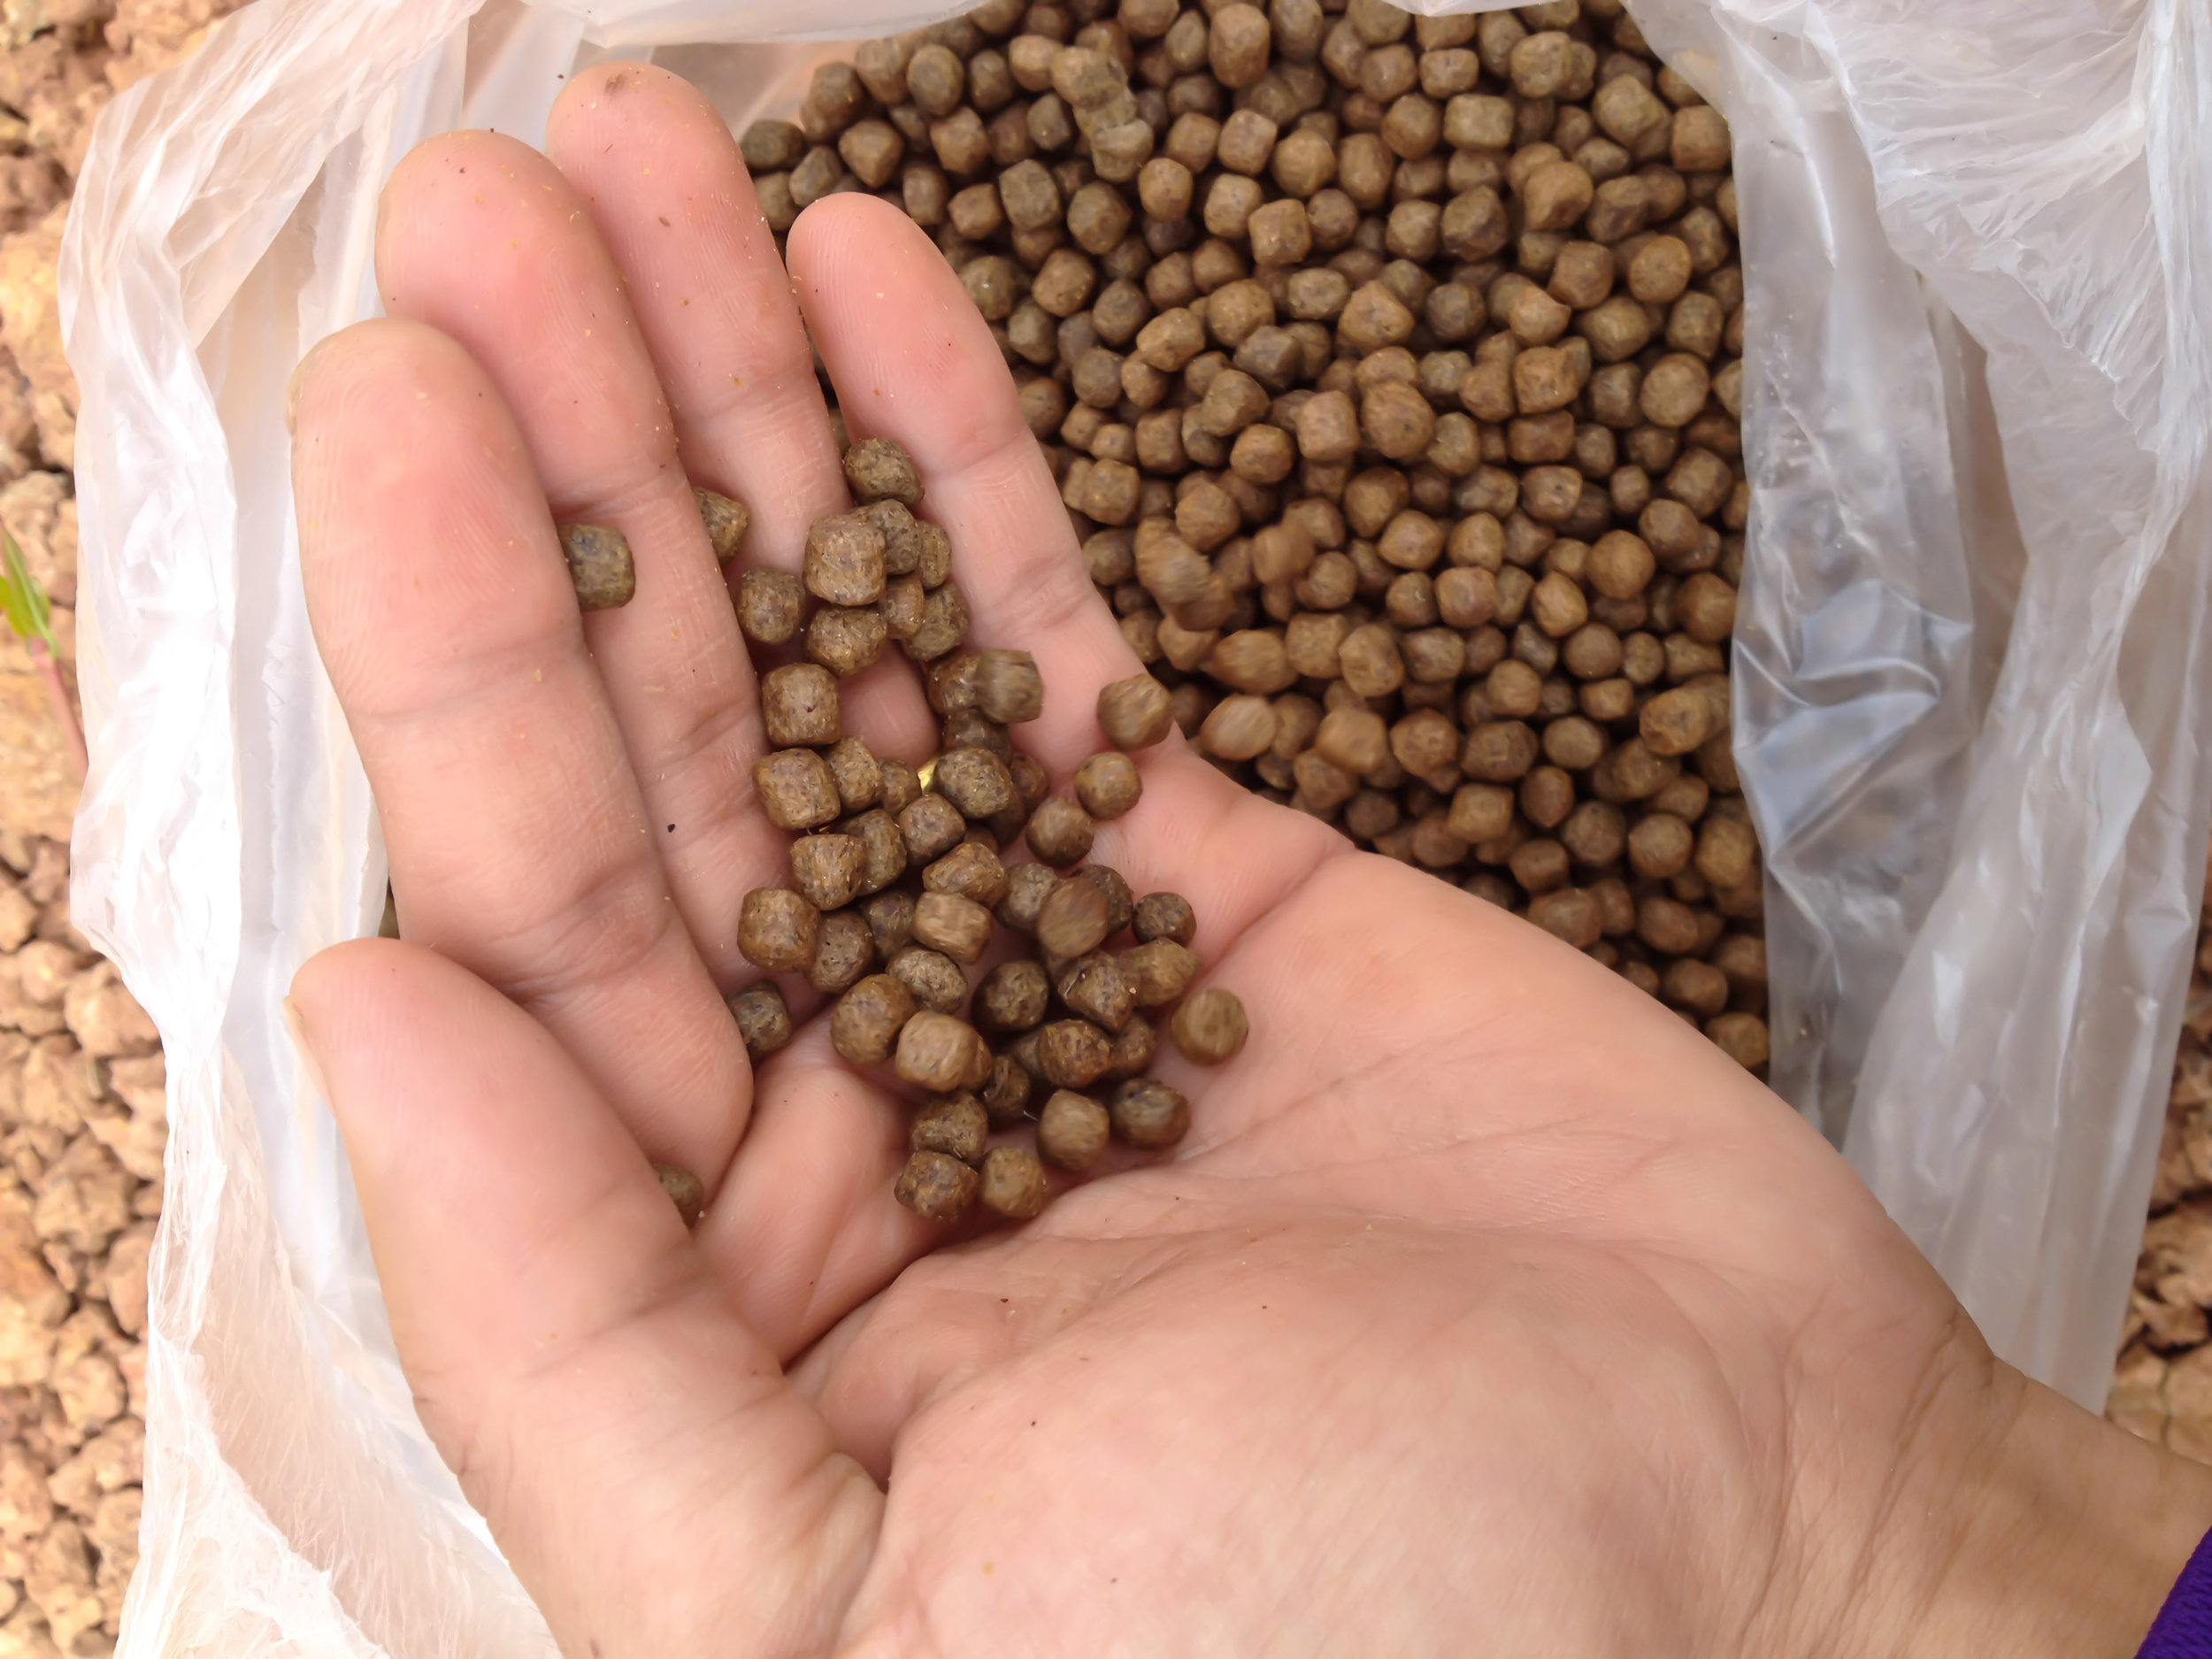 While smaller fish prefer flake food, pellet food shown here is good for larger fish.